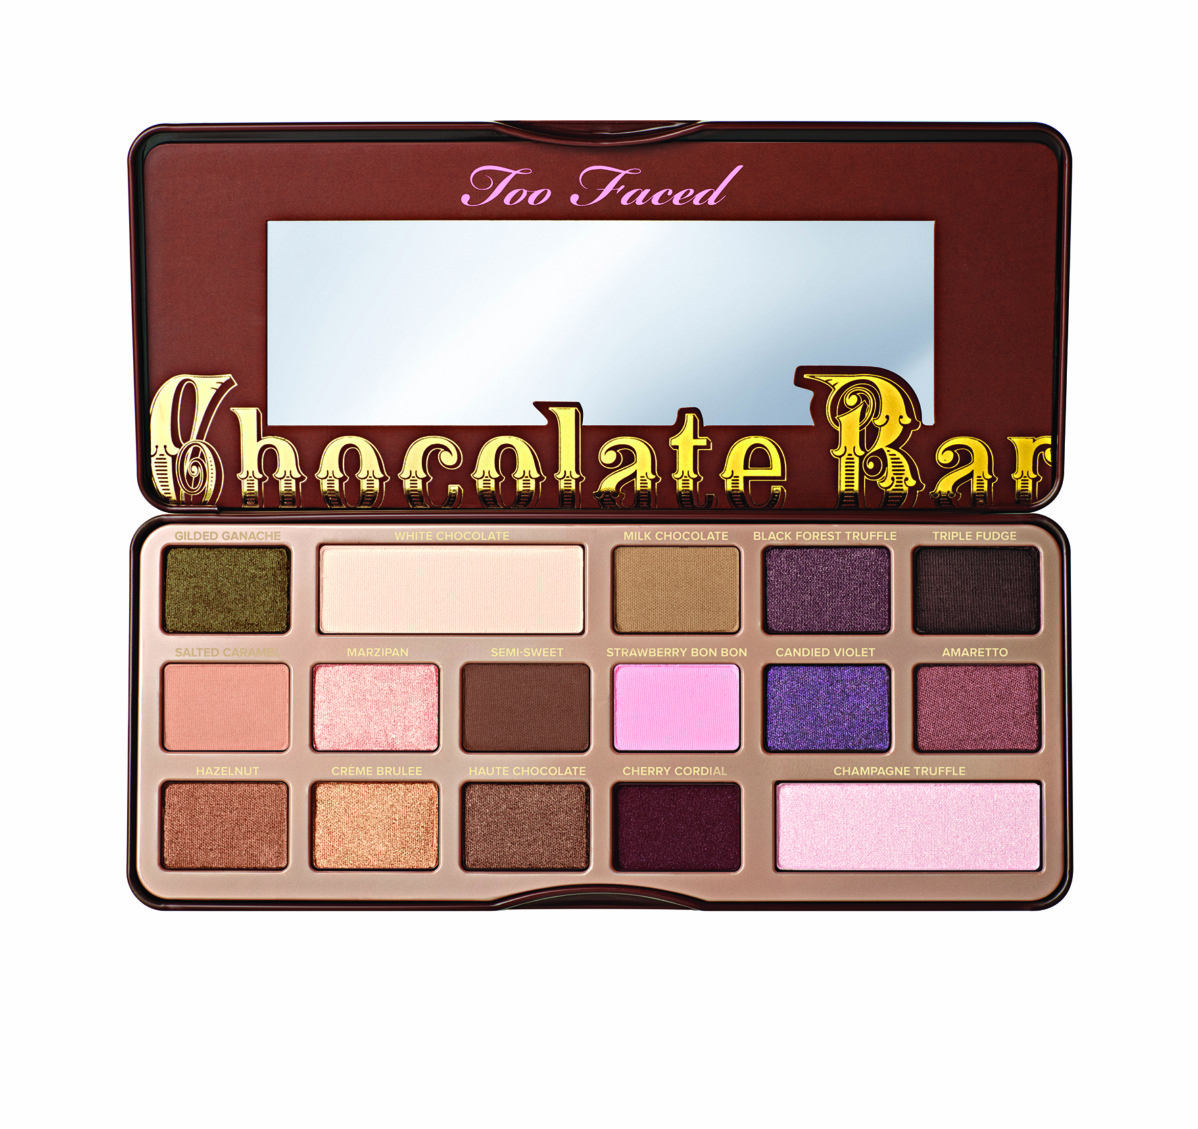 3 - Too Faced_ChocolateBar_paleta de sombras_R$269_aberto2 copia